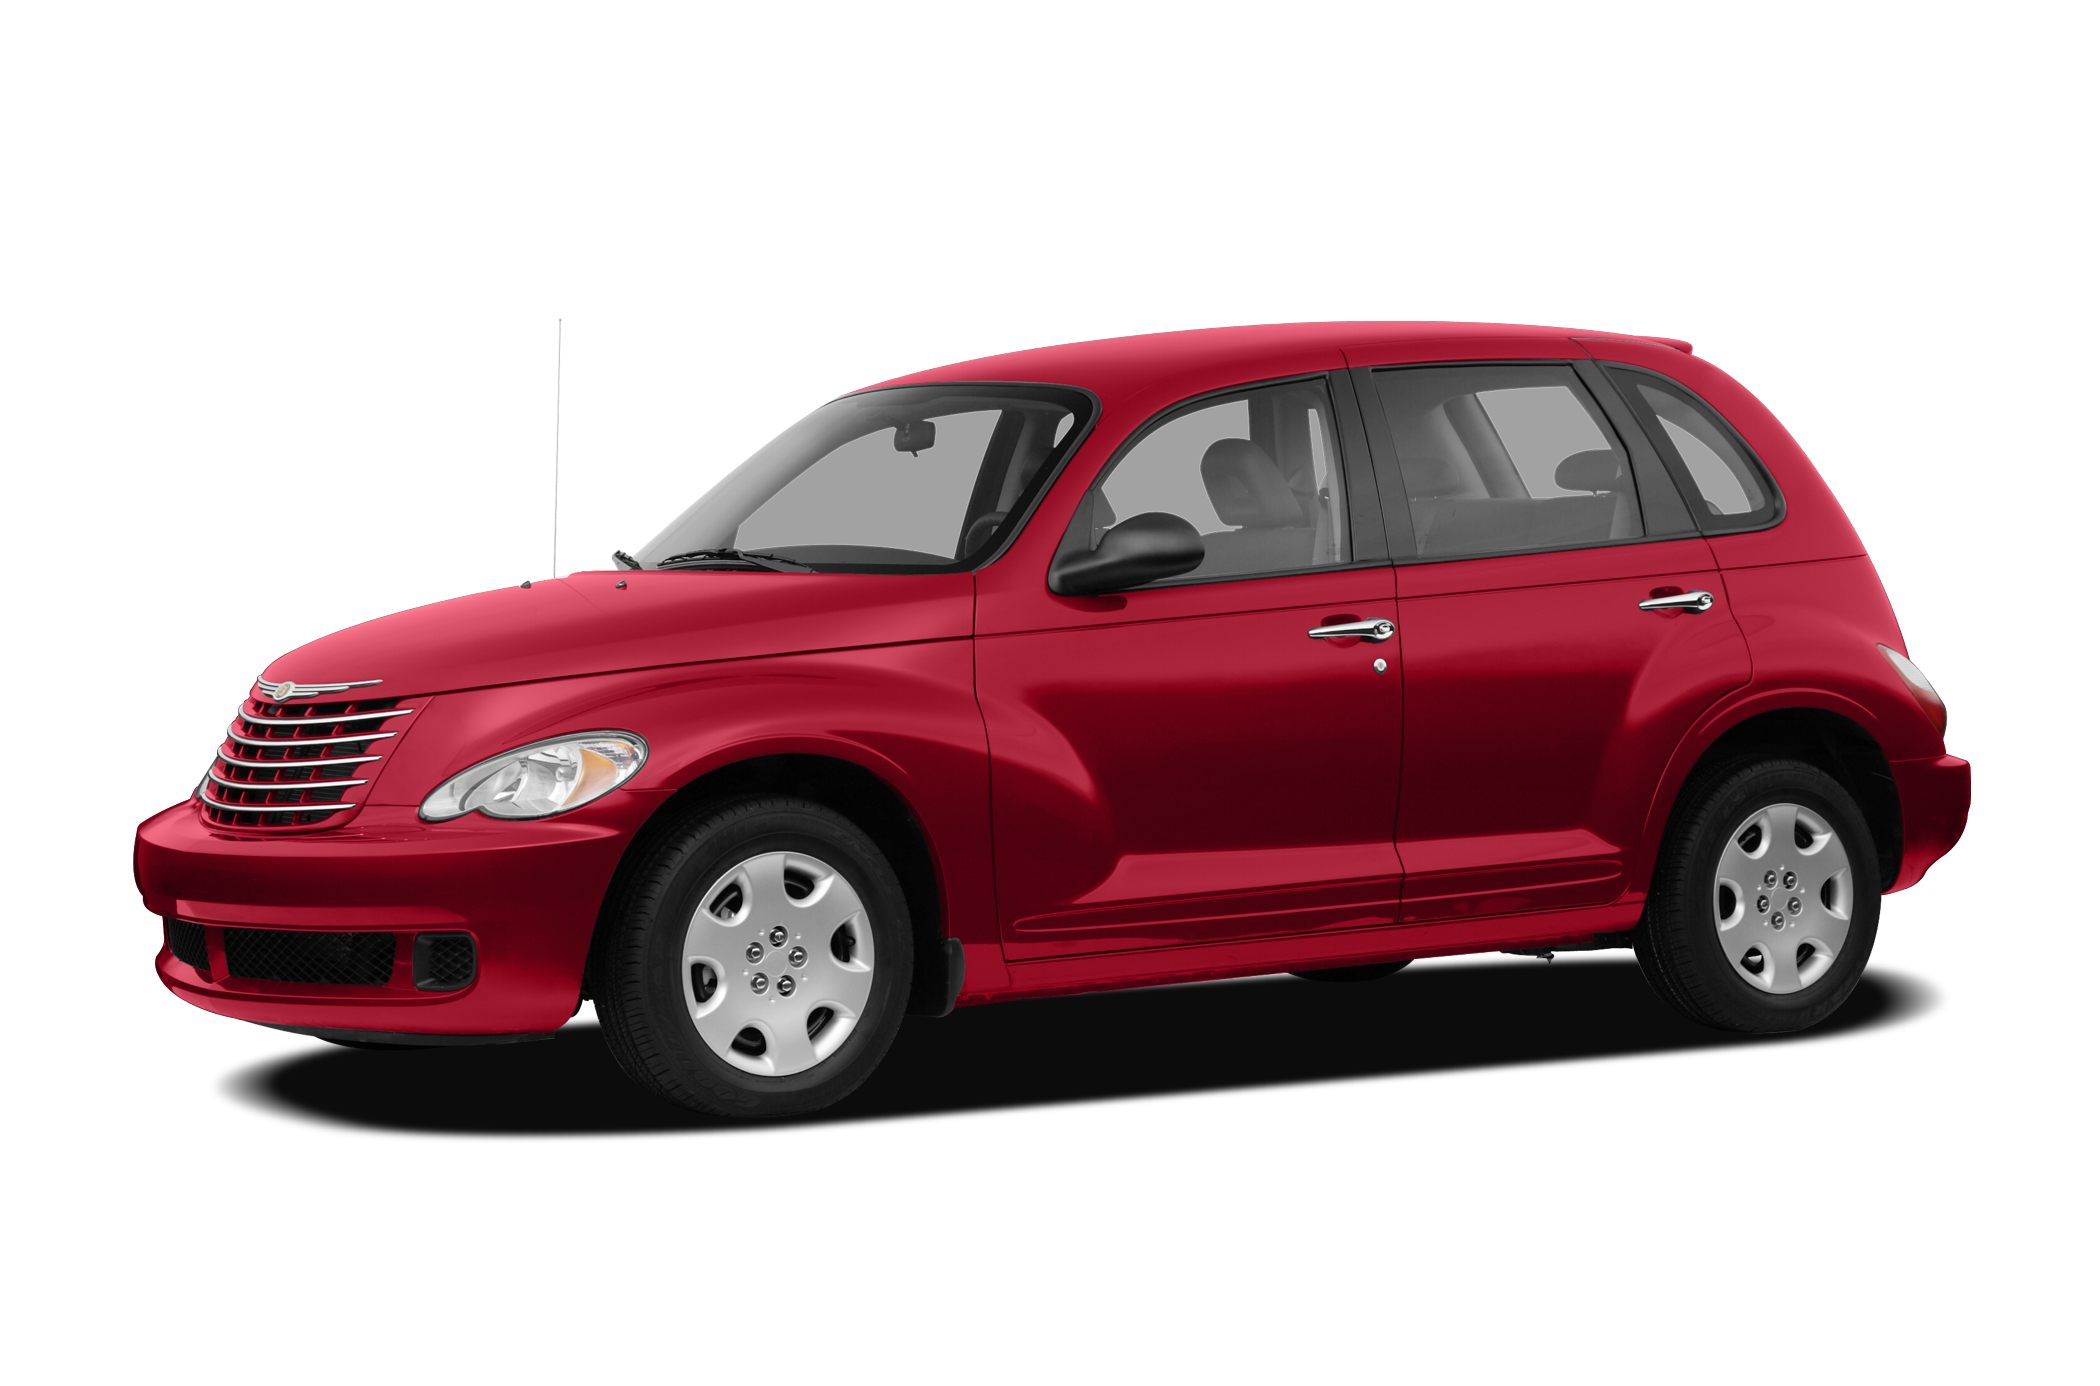 2009 Chrysler PT Cruiser LX  WHEN IT COMES TO EXCELLENCE IN USED CAR SALES YOU KNOW YOURE AT